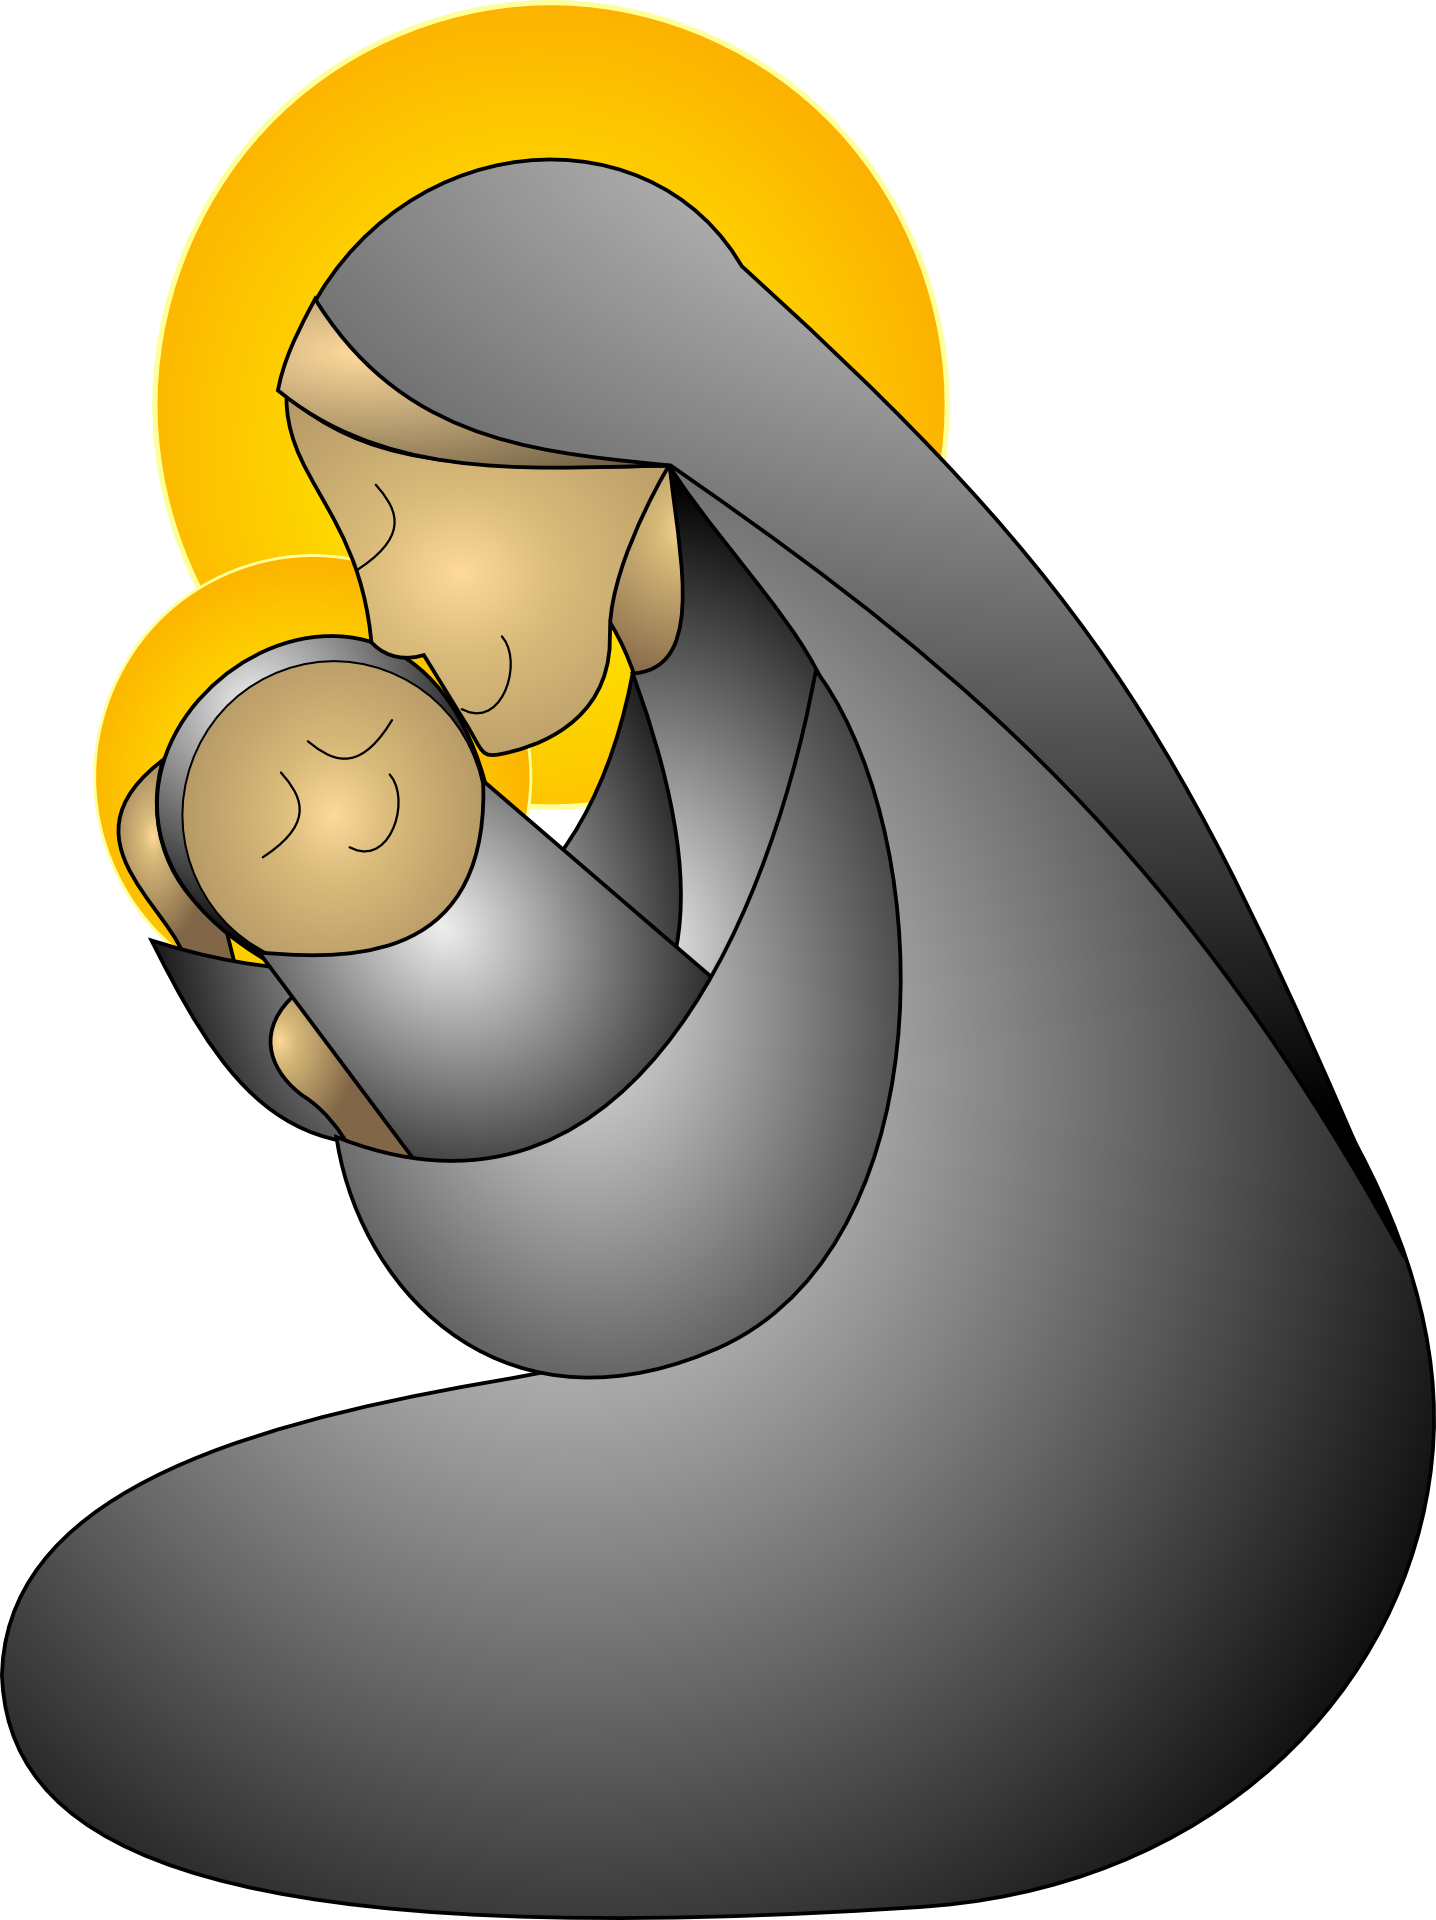 Mother clipart cuddle. Connection after breastfeeding my